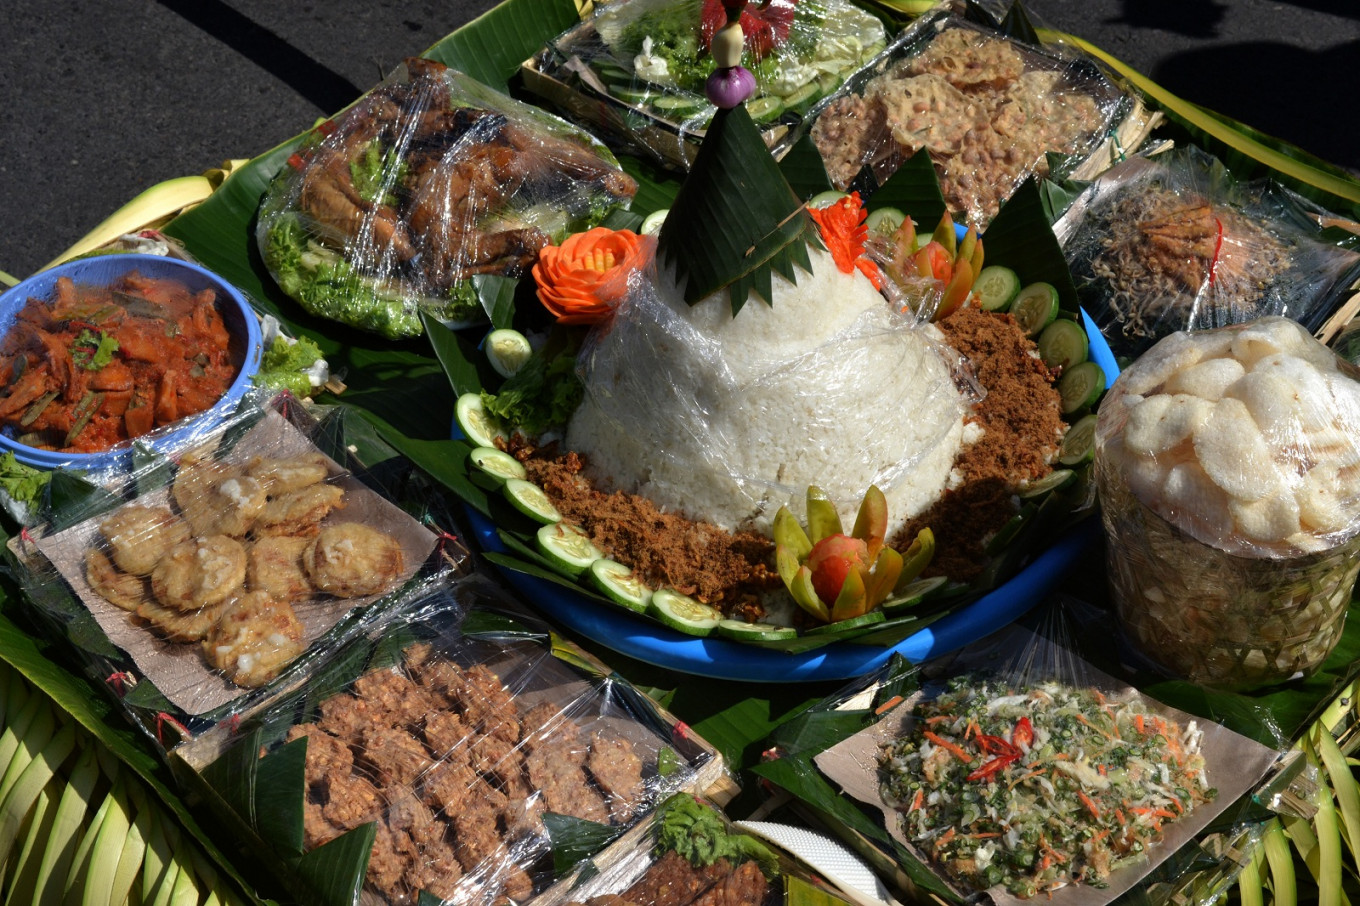 The complete set of nasi tumpeng, urap and other dishes